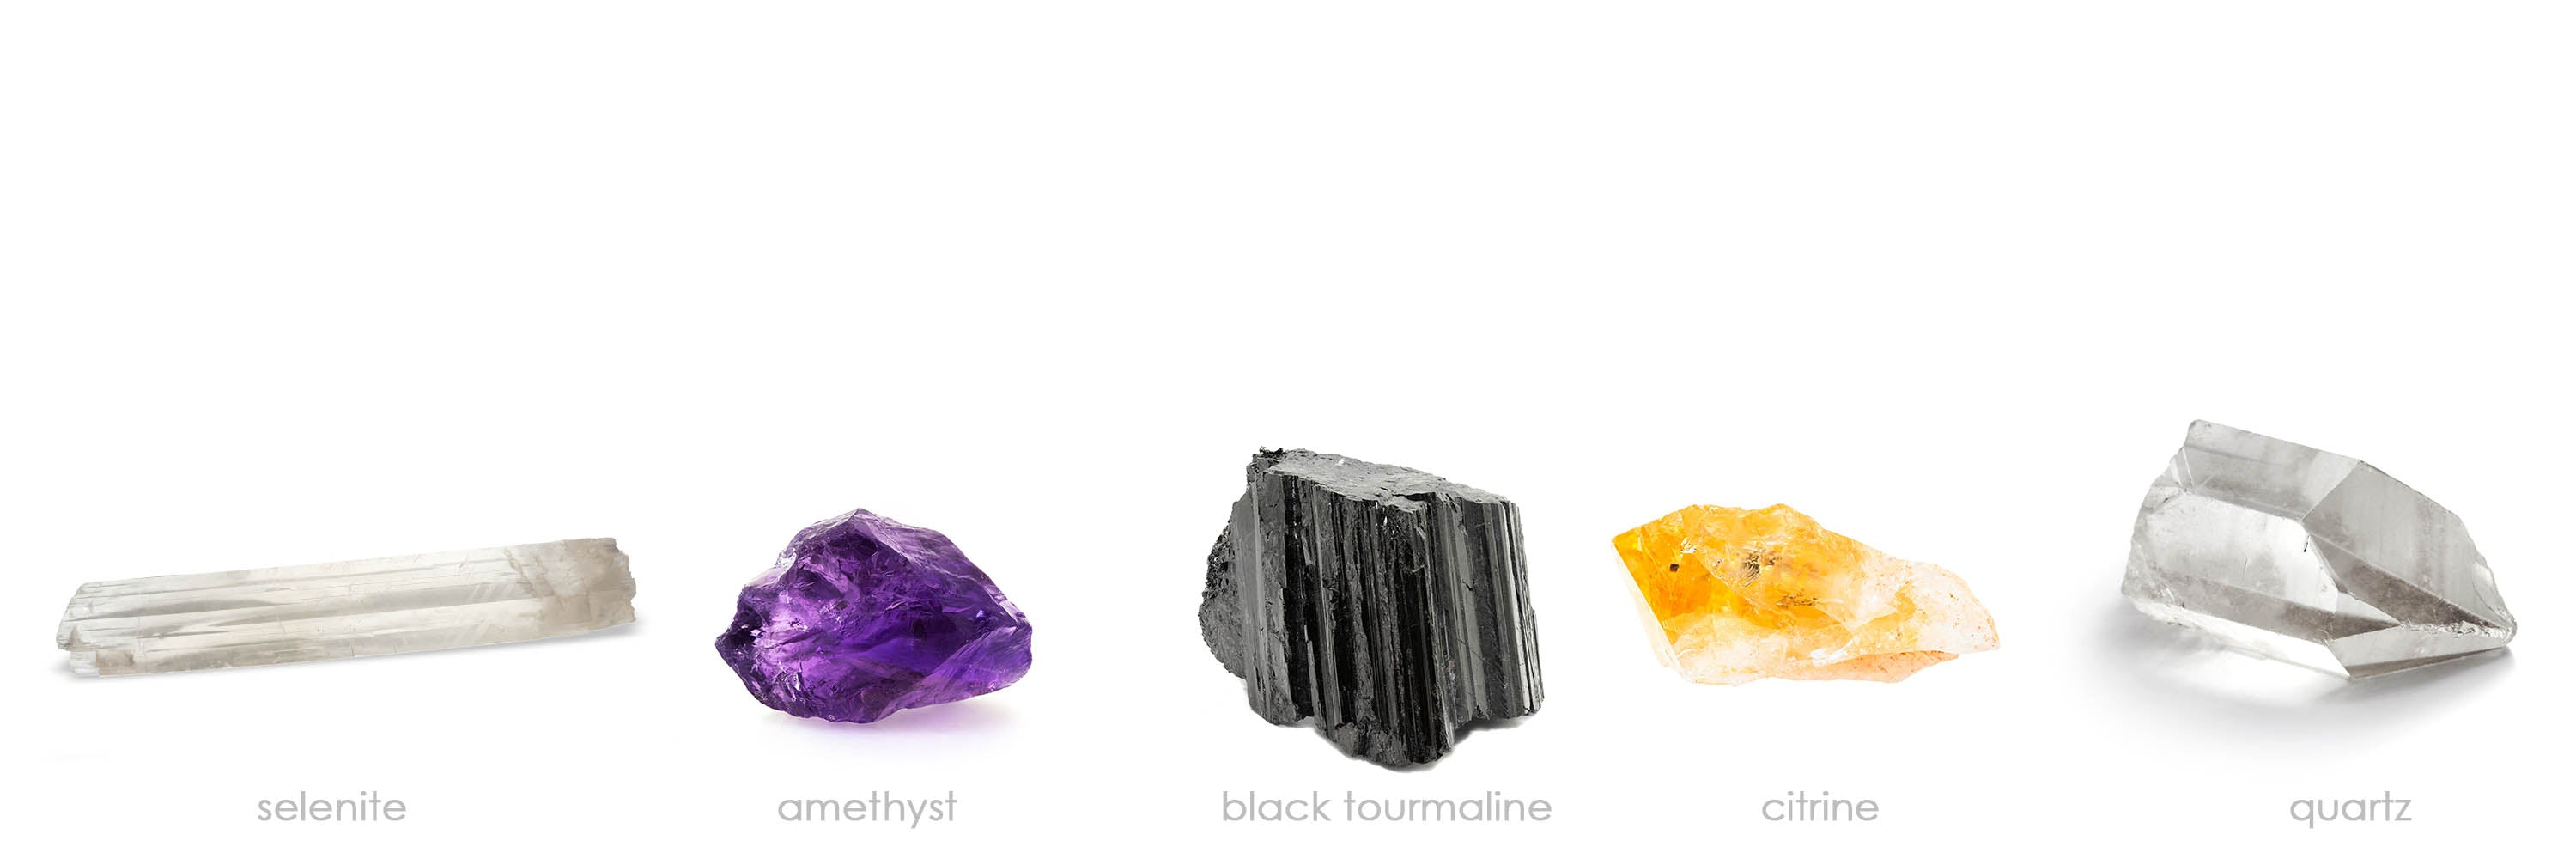 banner image of five crystals on a white background. Left to right: selenite, amethyst, black tourmaline, citrine and quartz.